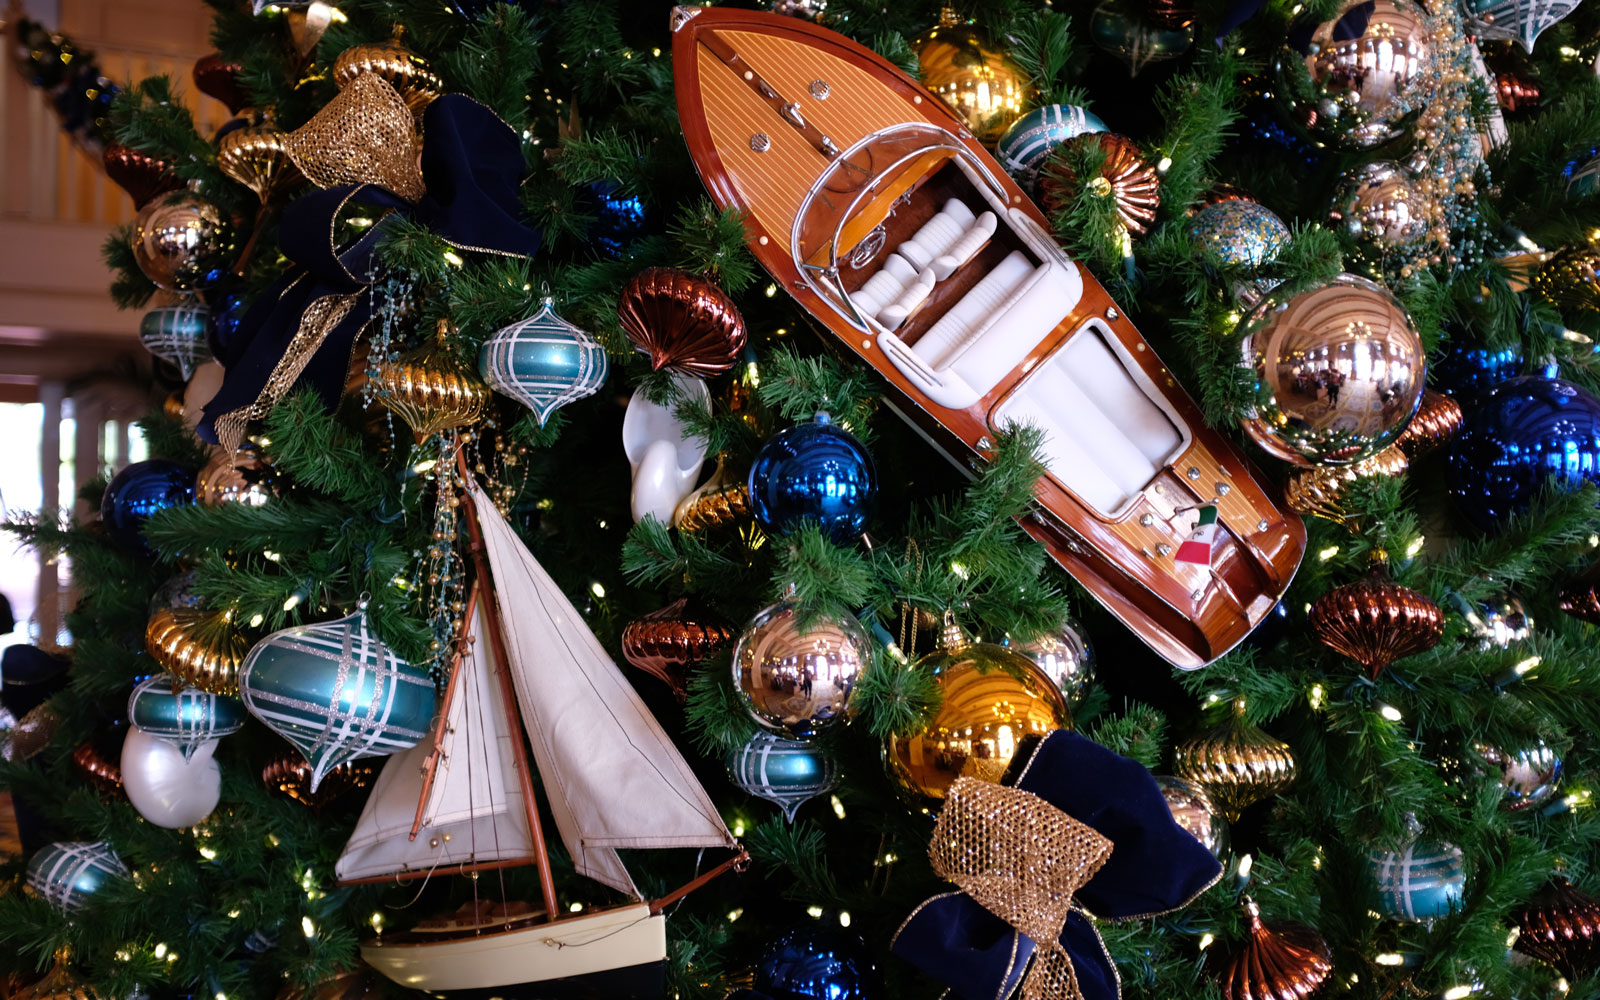 Yacht Club ornaments at Disney